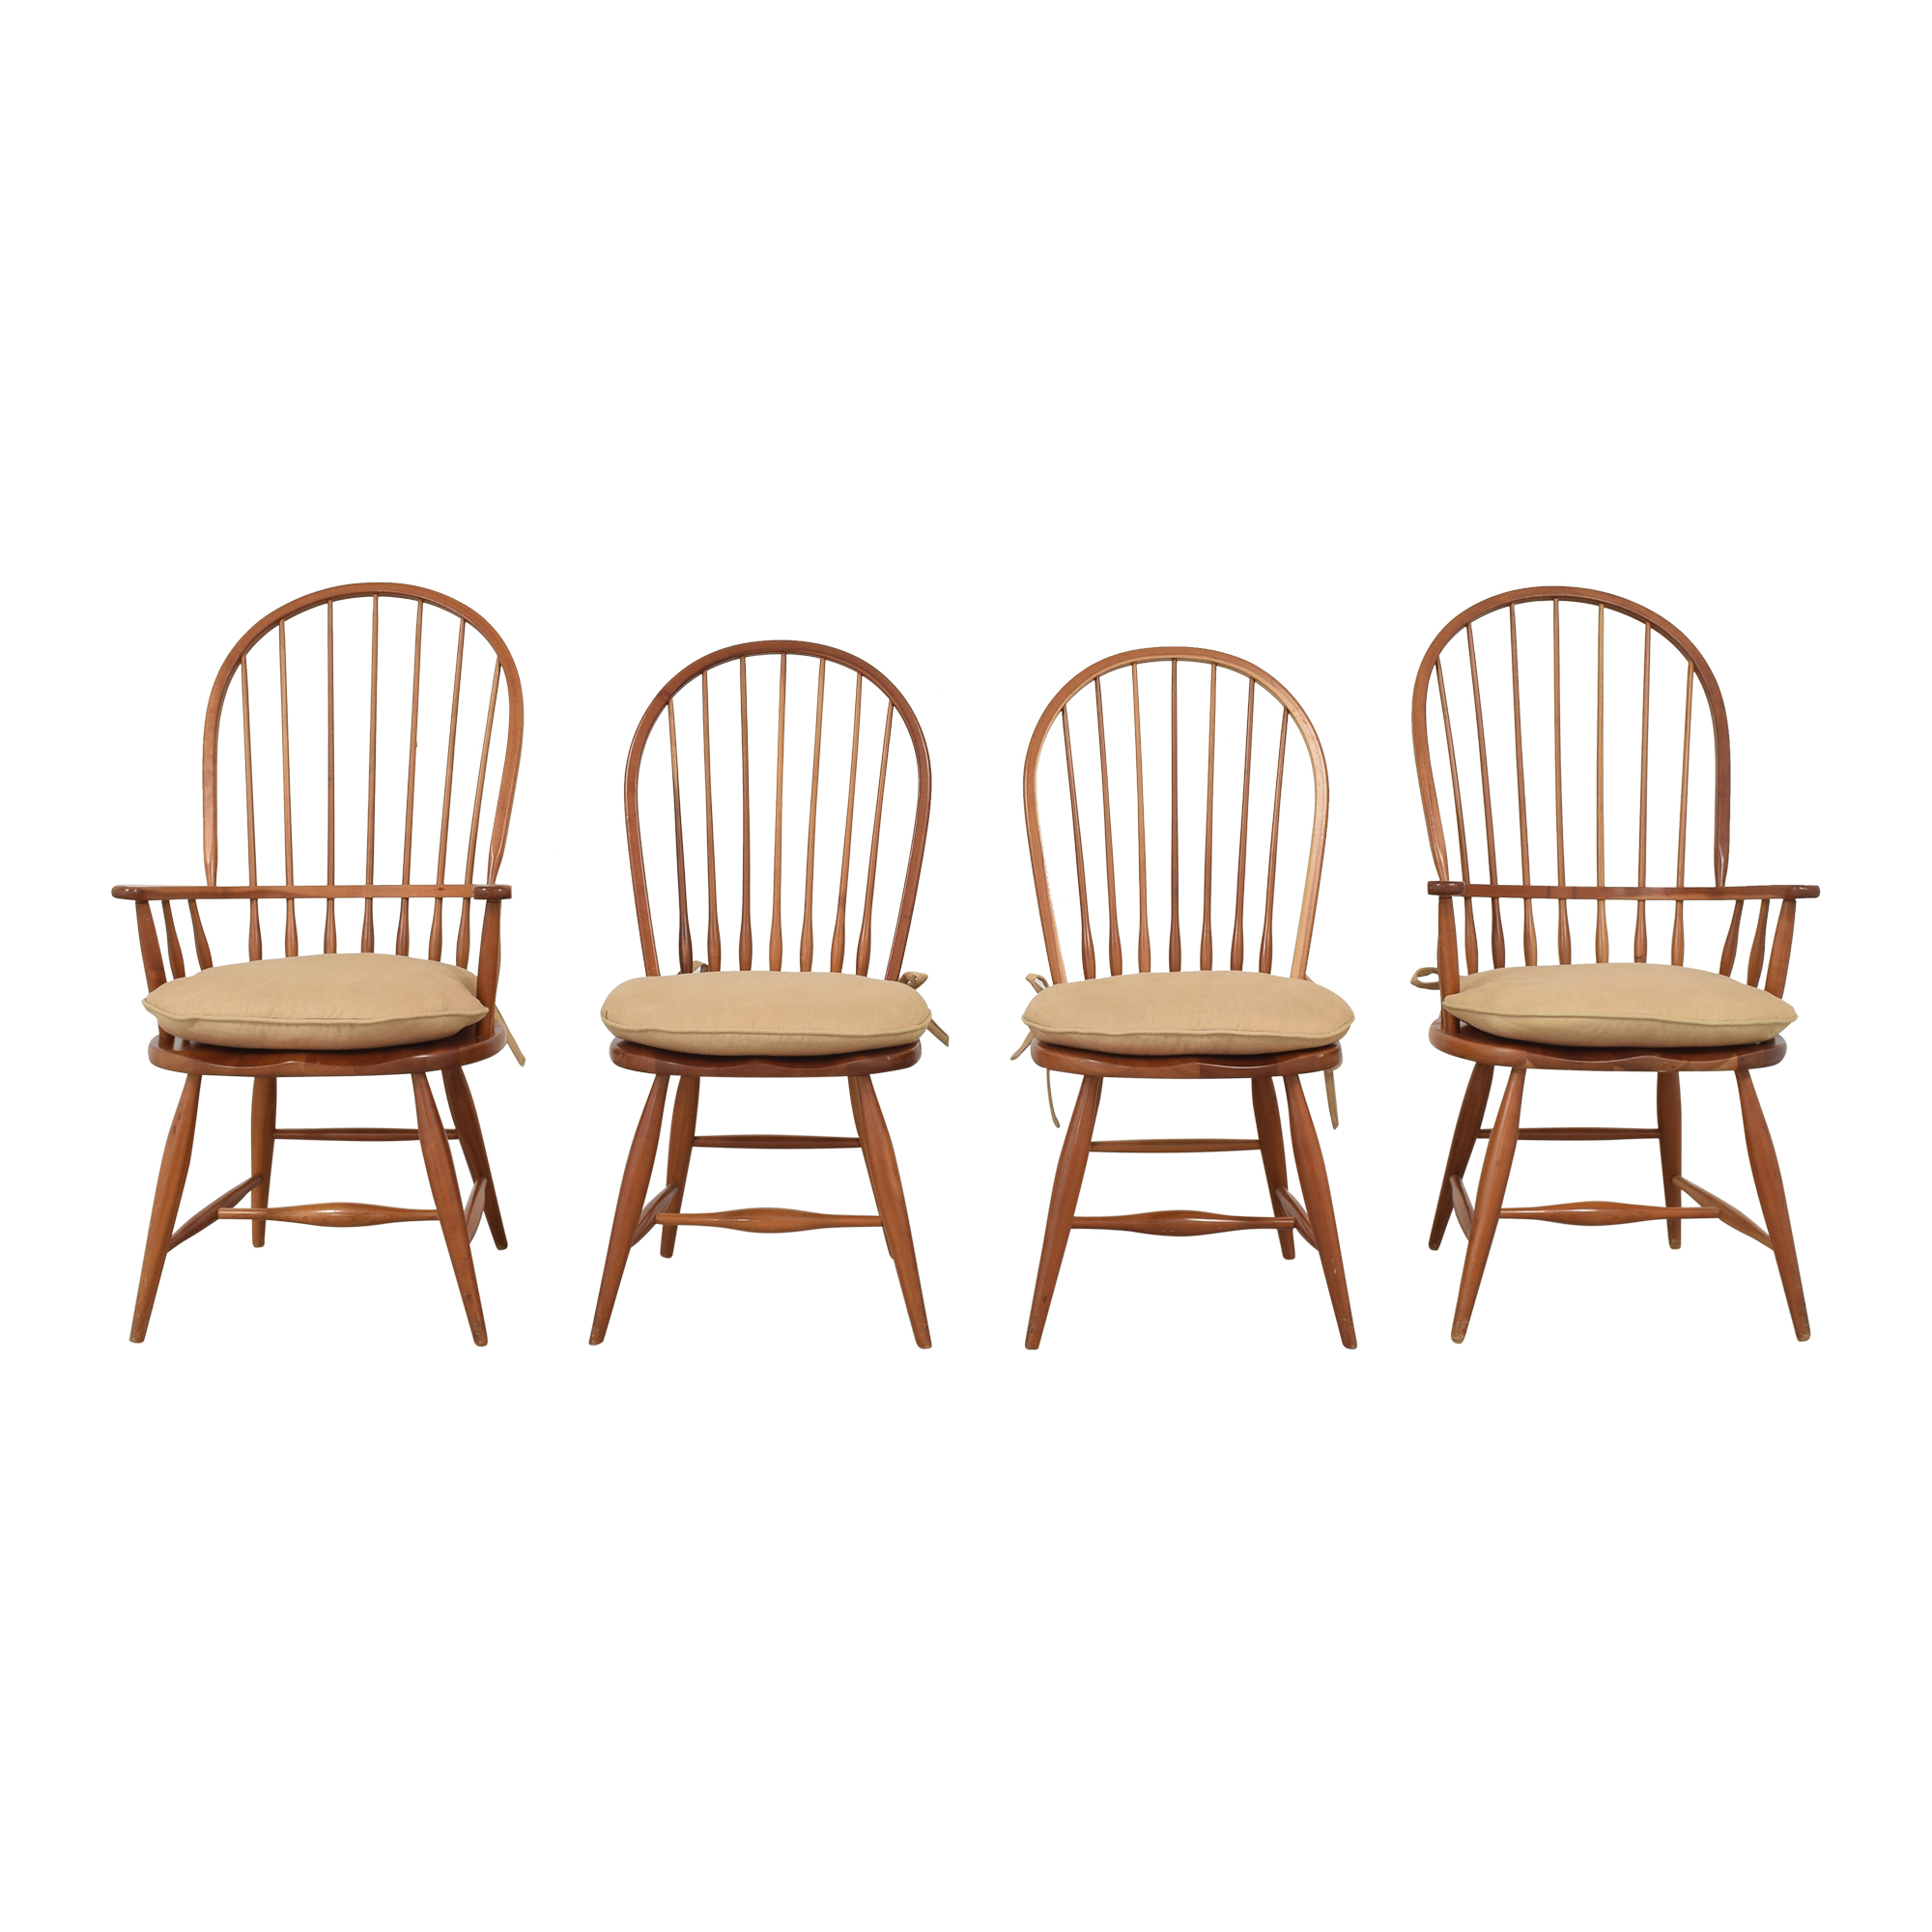 Asher Benjamin Studio Asher Benjamin Studio Windsor Back Dining Room Chairs coupon